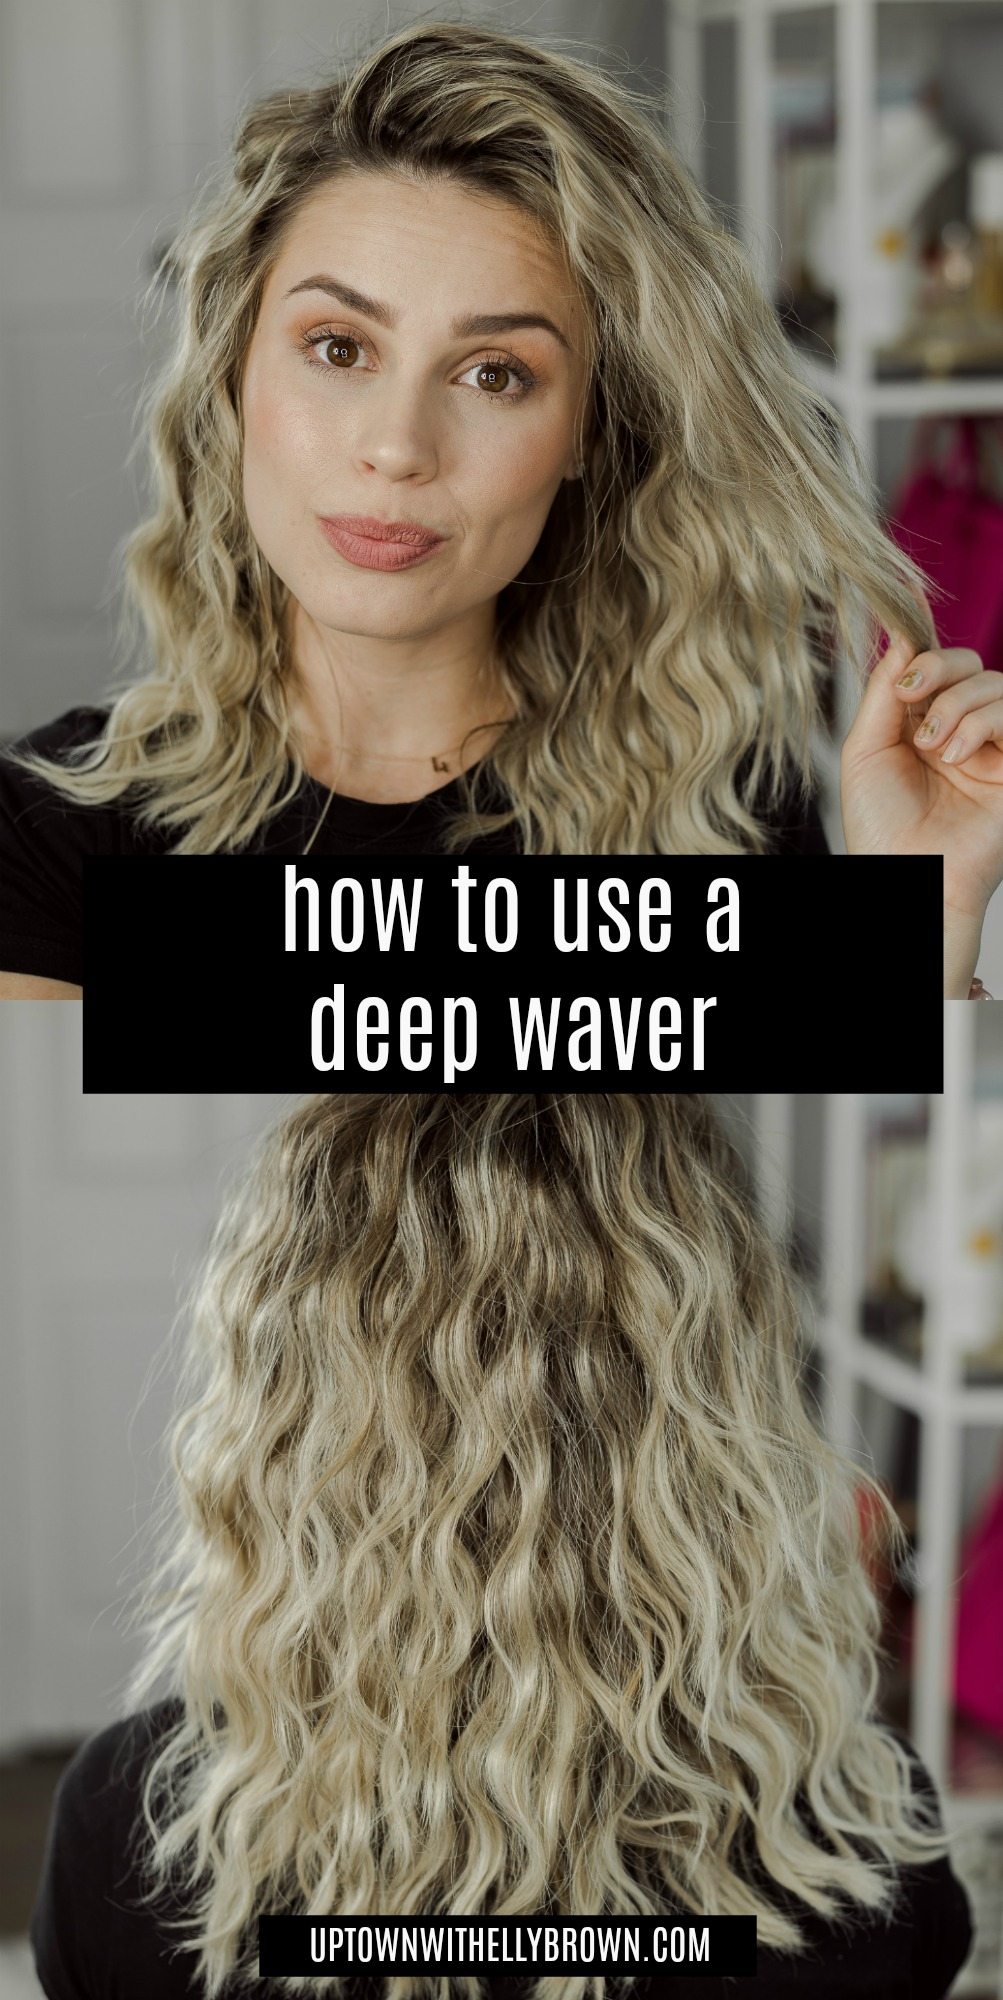 Houston beauty blogger Uptown with Elly Brown shares a review and how to use the Revlon Jumbo 3 Barrel Hair Waver for the perfect waves!